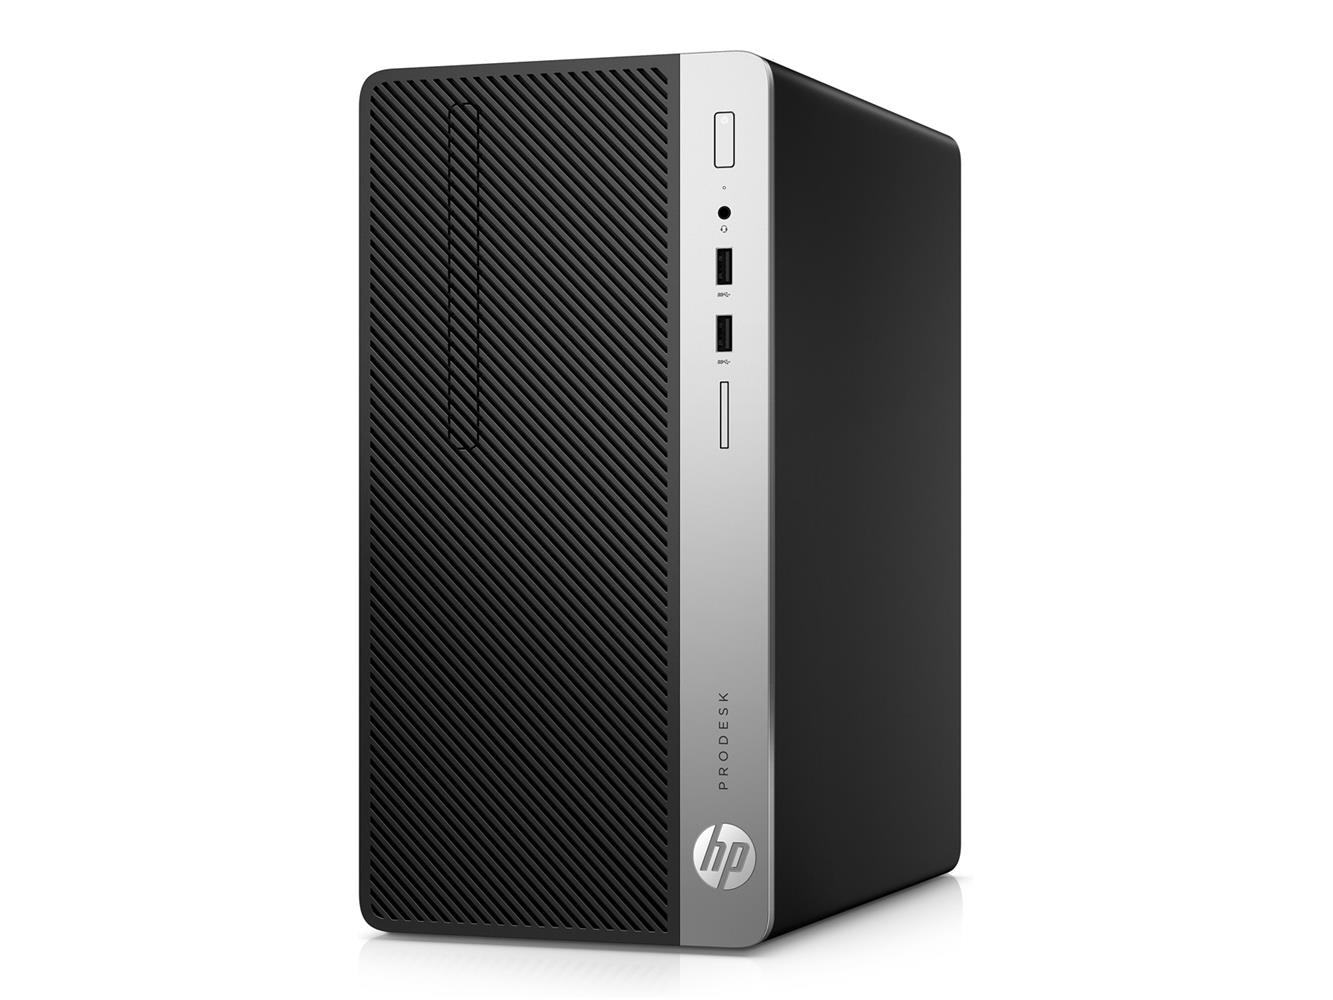 HP ProDesk 400 G4 Microtower - HP ProDesk 400 G4 Microtower